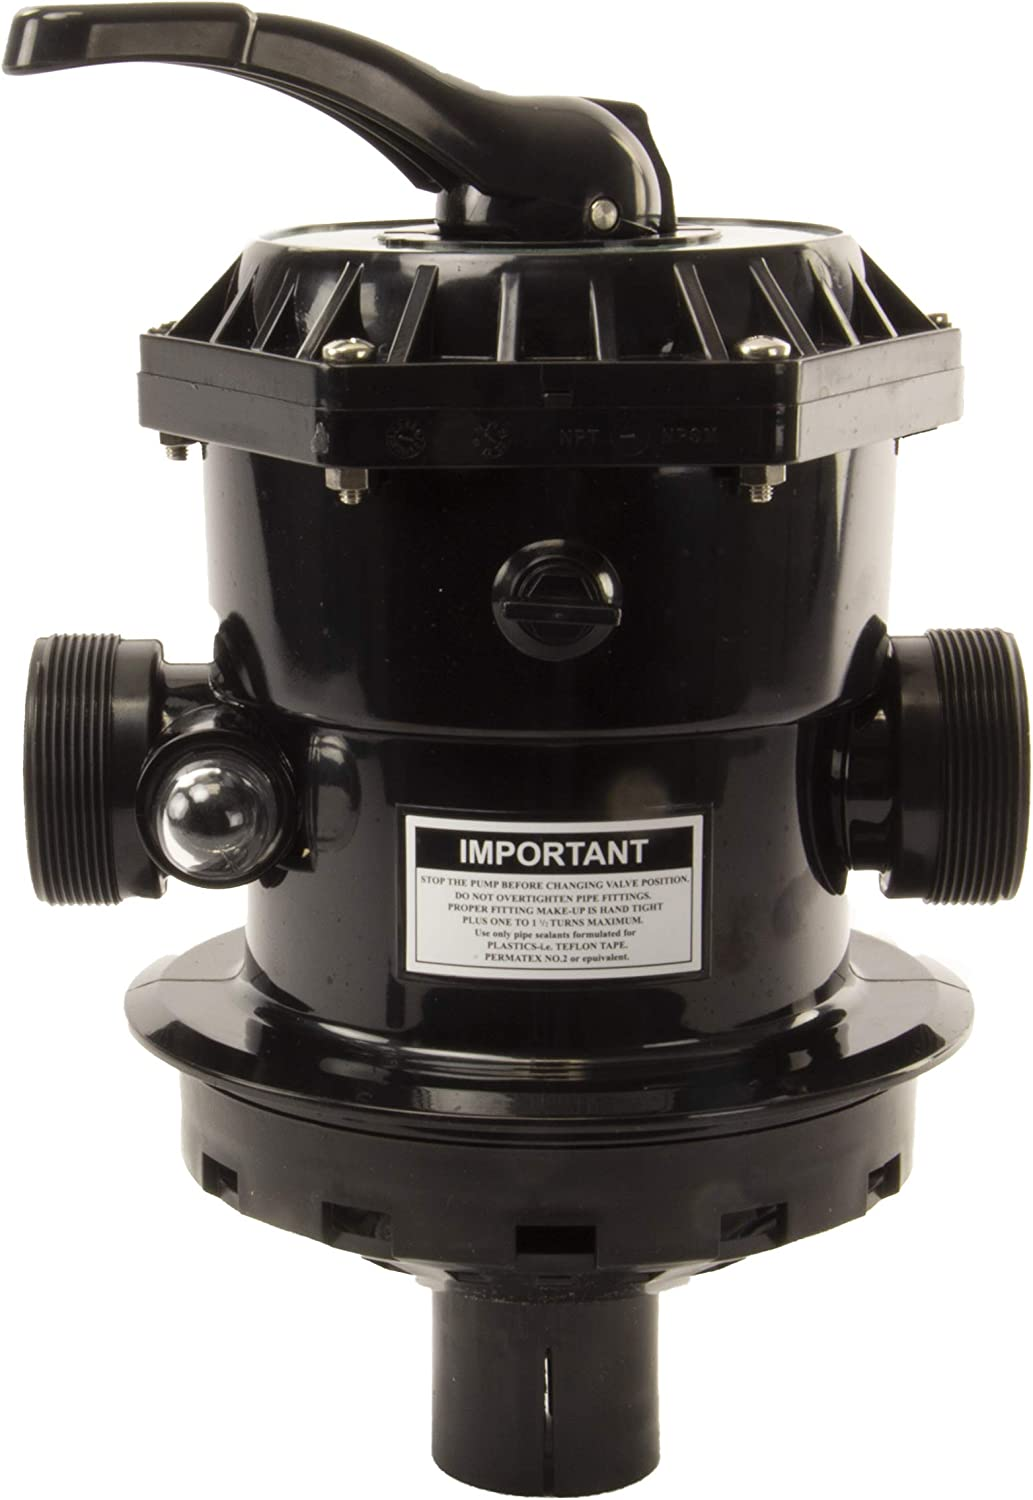 Rx Clear Backwash Valve SP-714T Replacement Multiport Valve for Hayward Above Ground Pool Sand Filters | 1-1/2-Inch 6-Way | Top Mount | Black